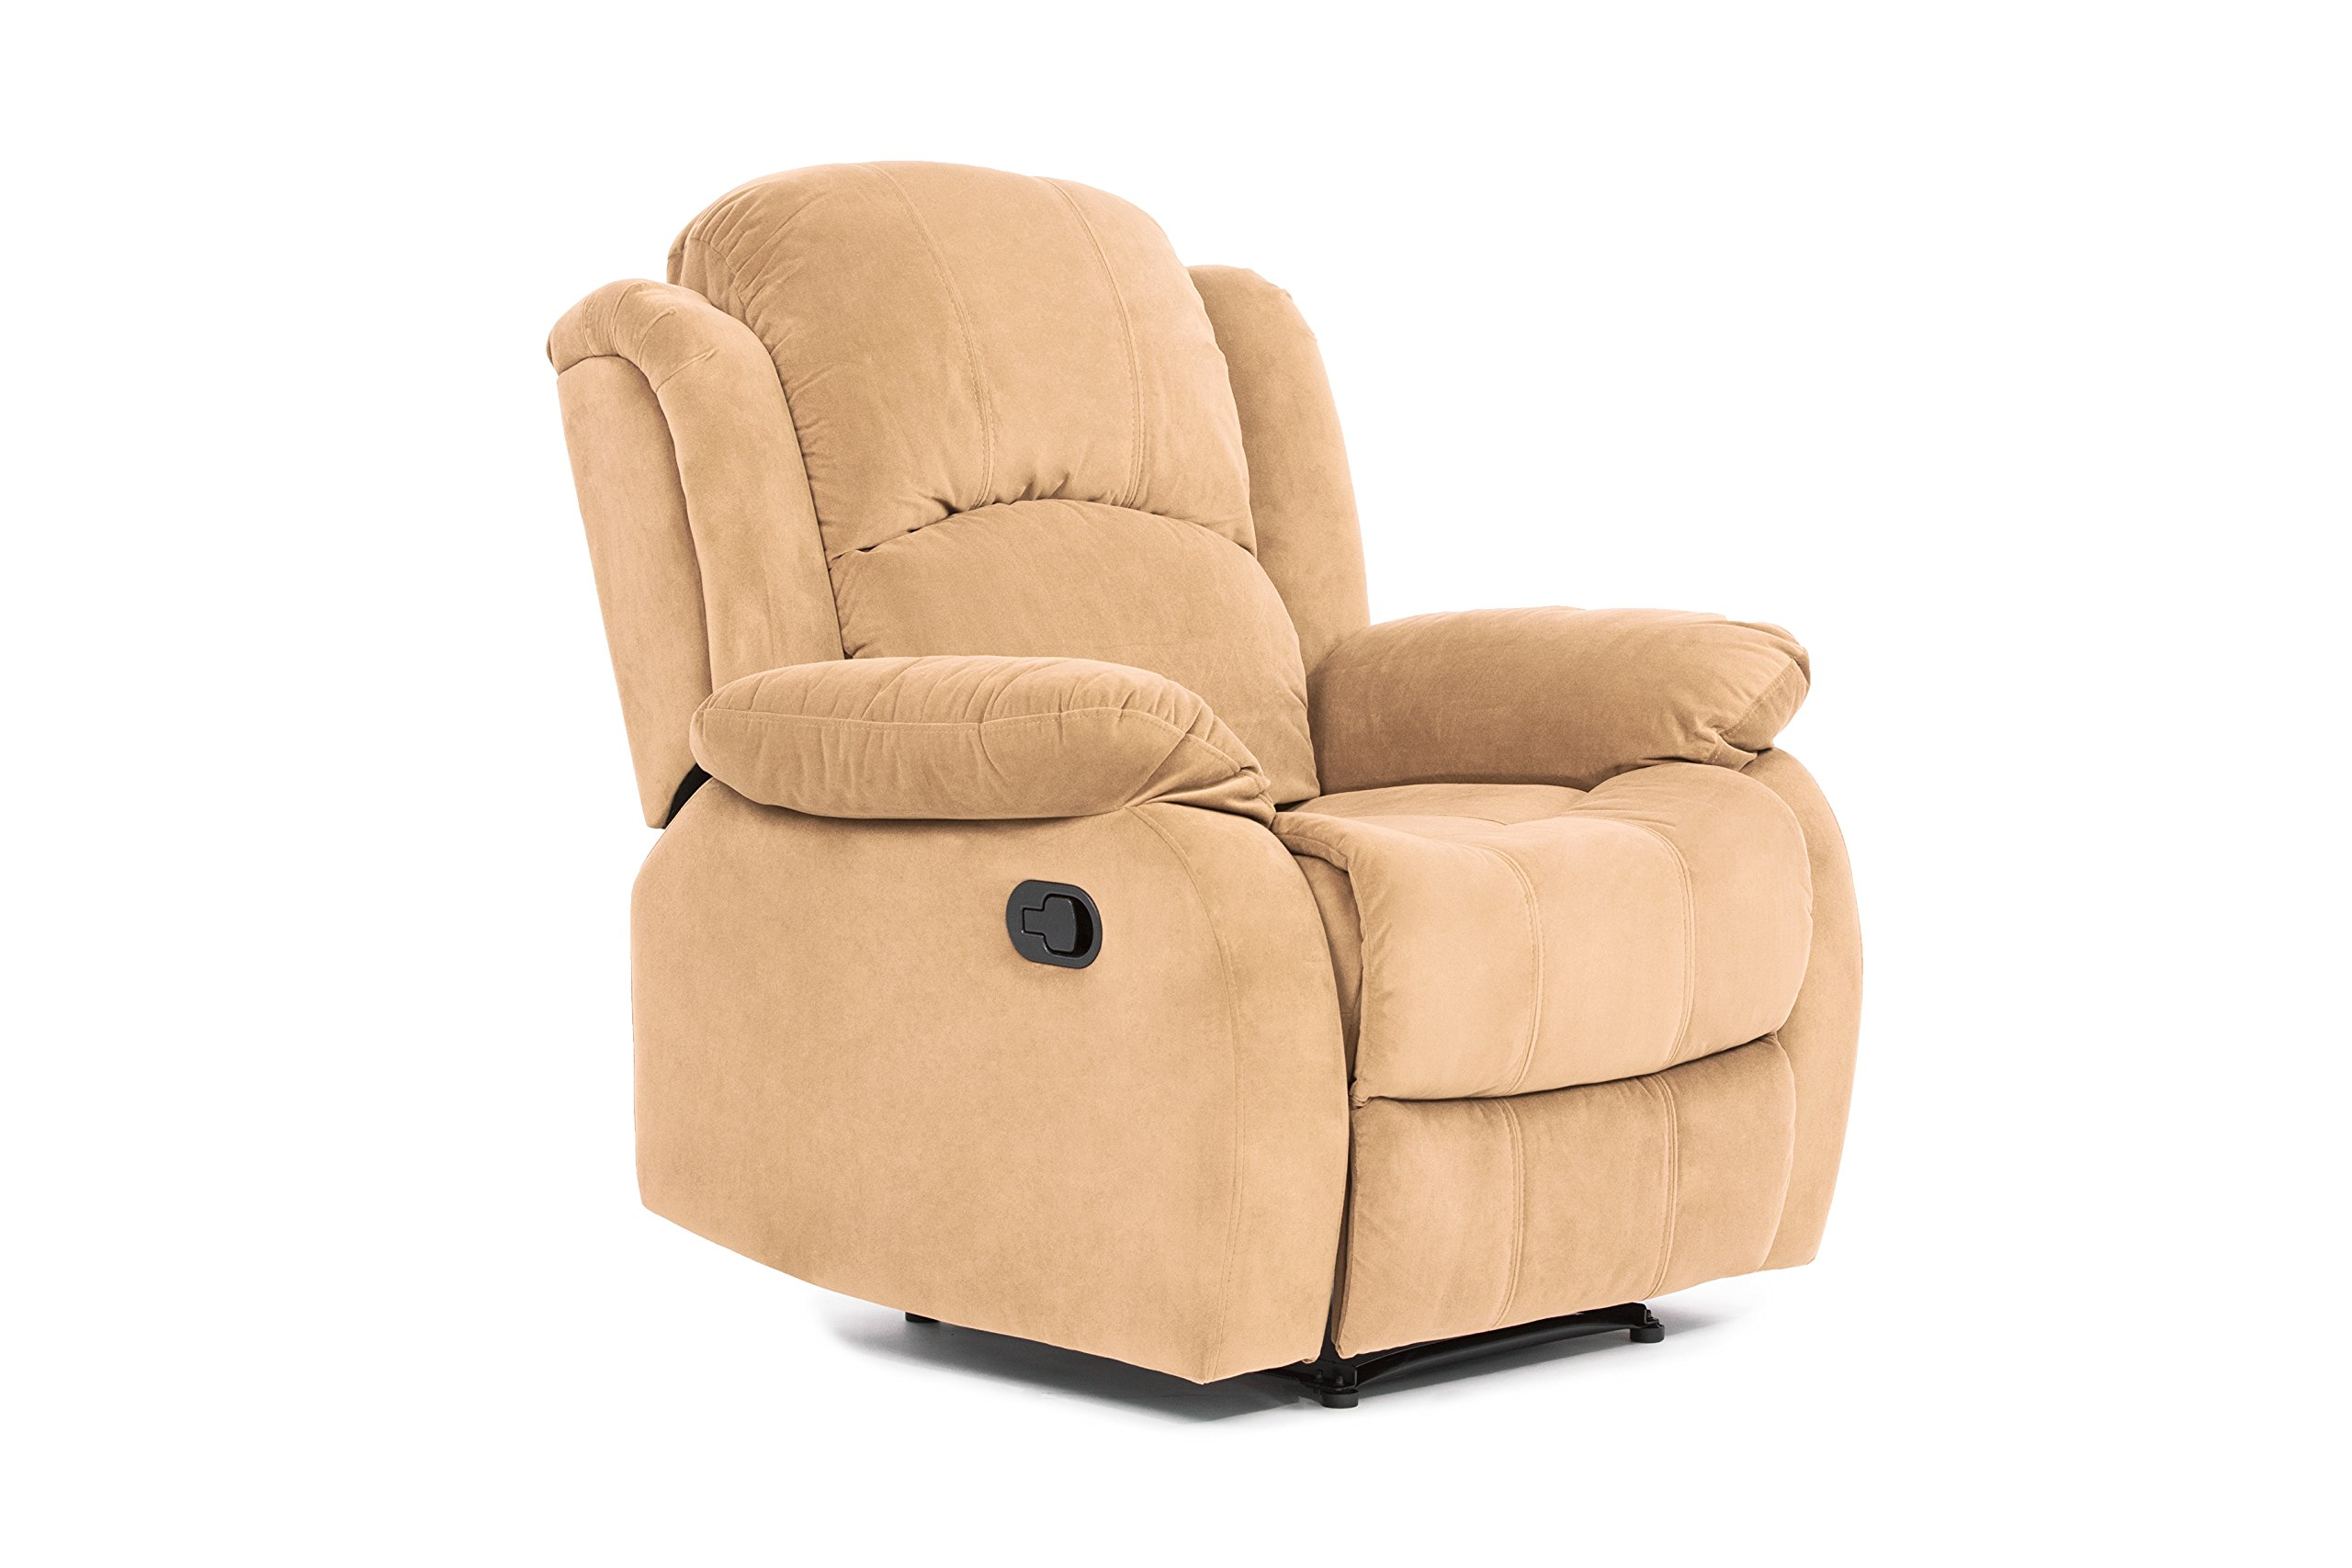 Classic and Traditional Brush Microfiber Recliner Chair, Love Seat, Sofa Size - 1 Seater, 2 Seater, 3 Seater Set (1 Seater)